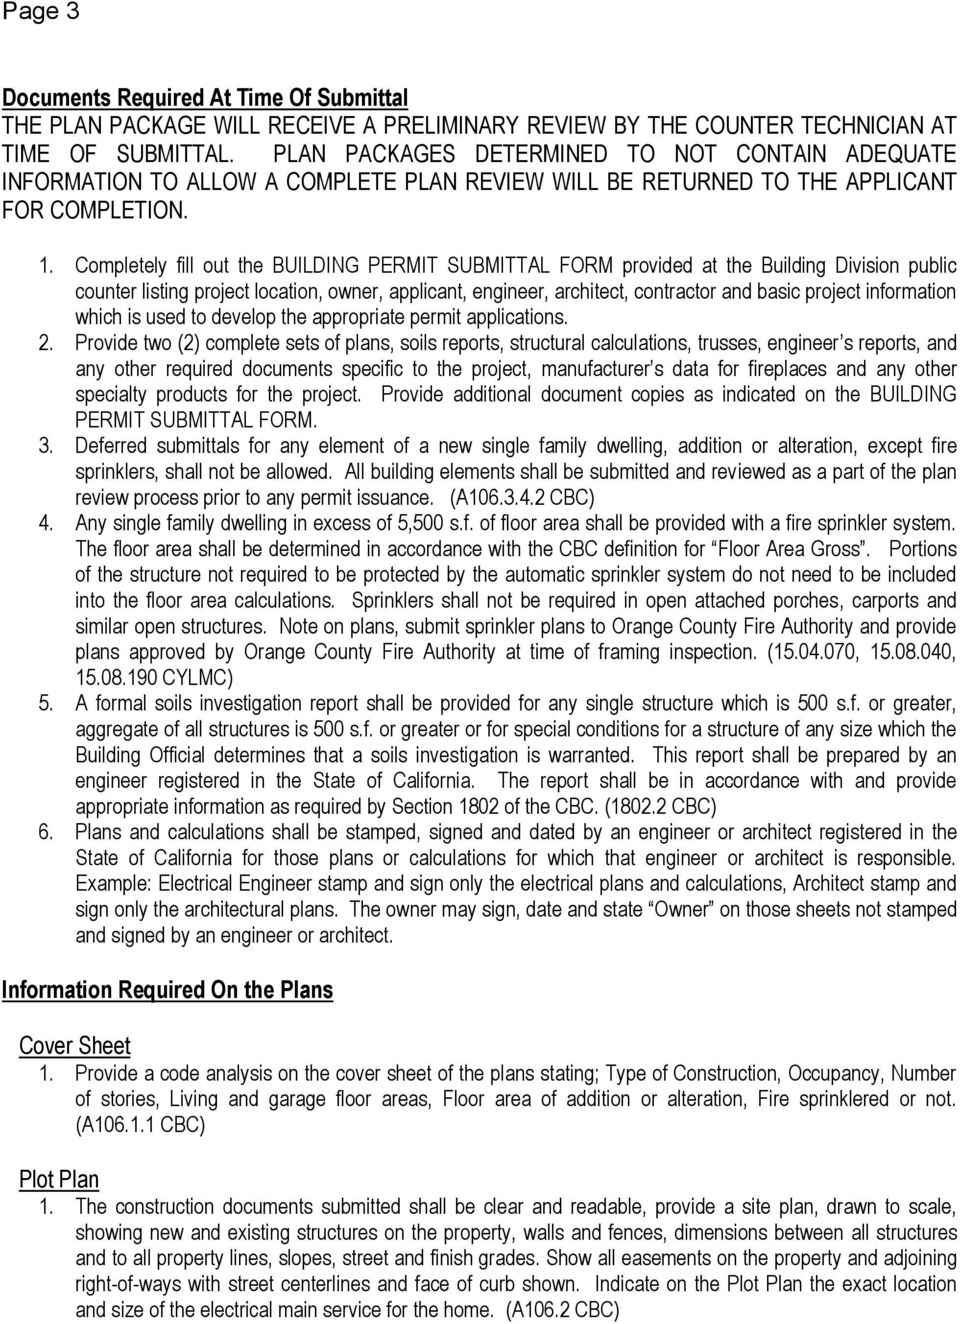 Completely fill out the BUILDING PERMIT SUBMITTAL FORM provided at the Building Division public counter listing project location, owner, applicant, engineer, architect, contractor and basic project